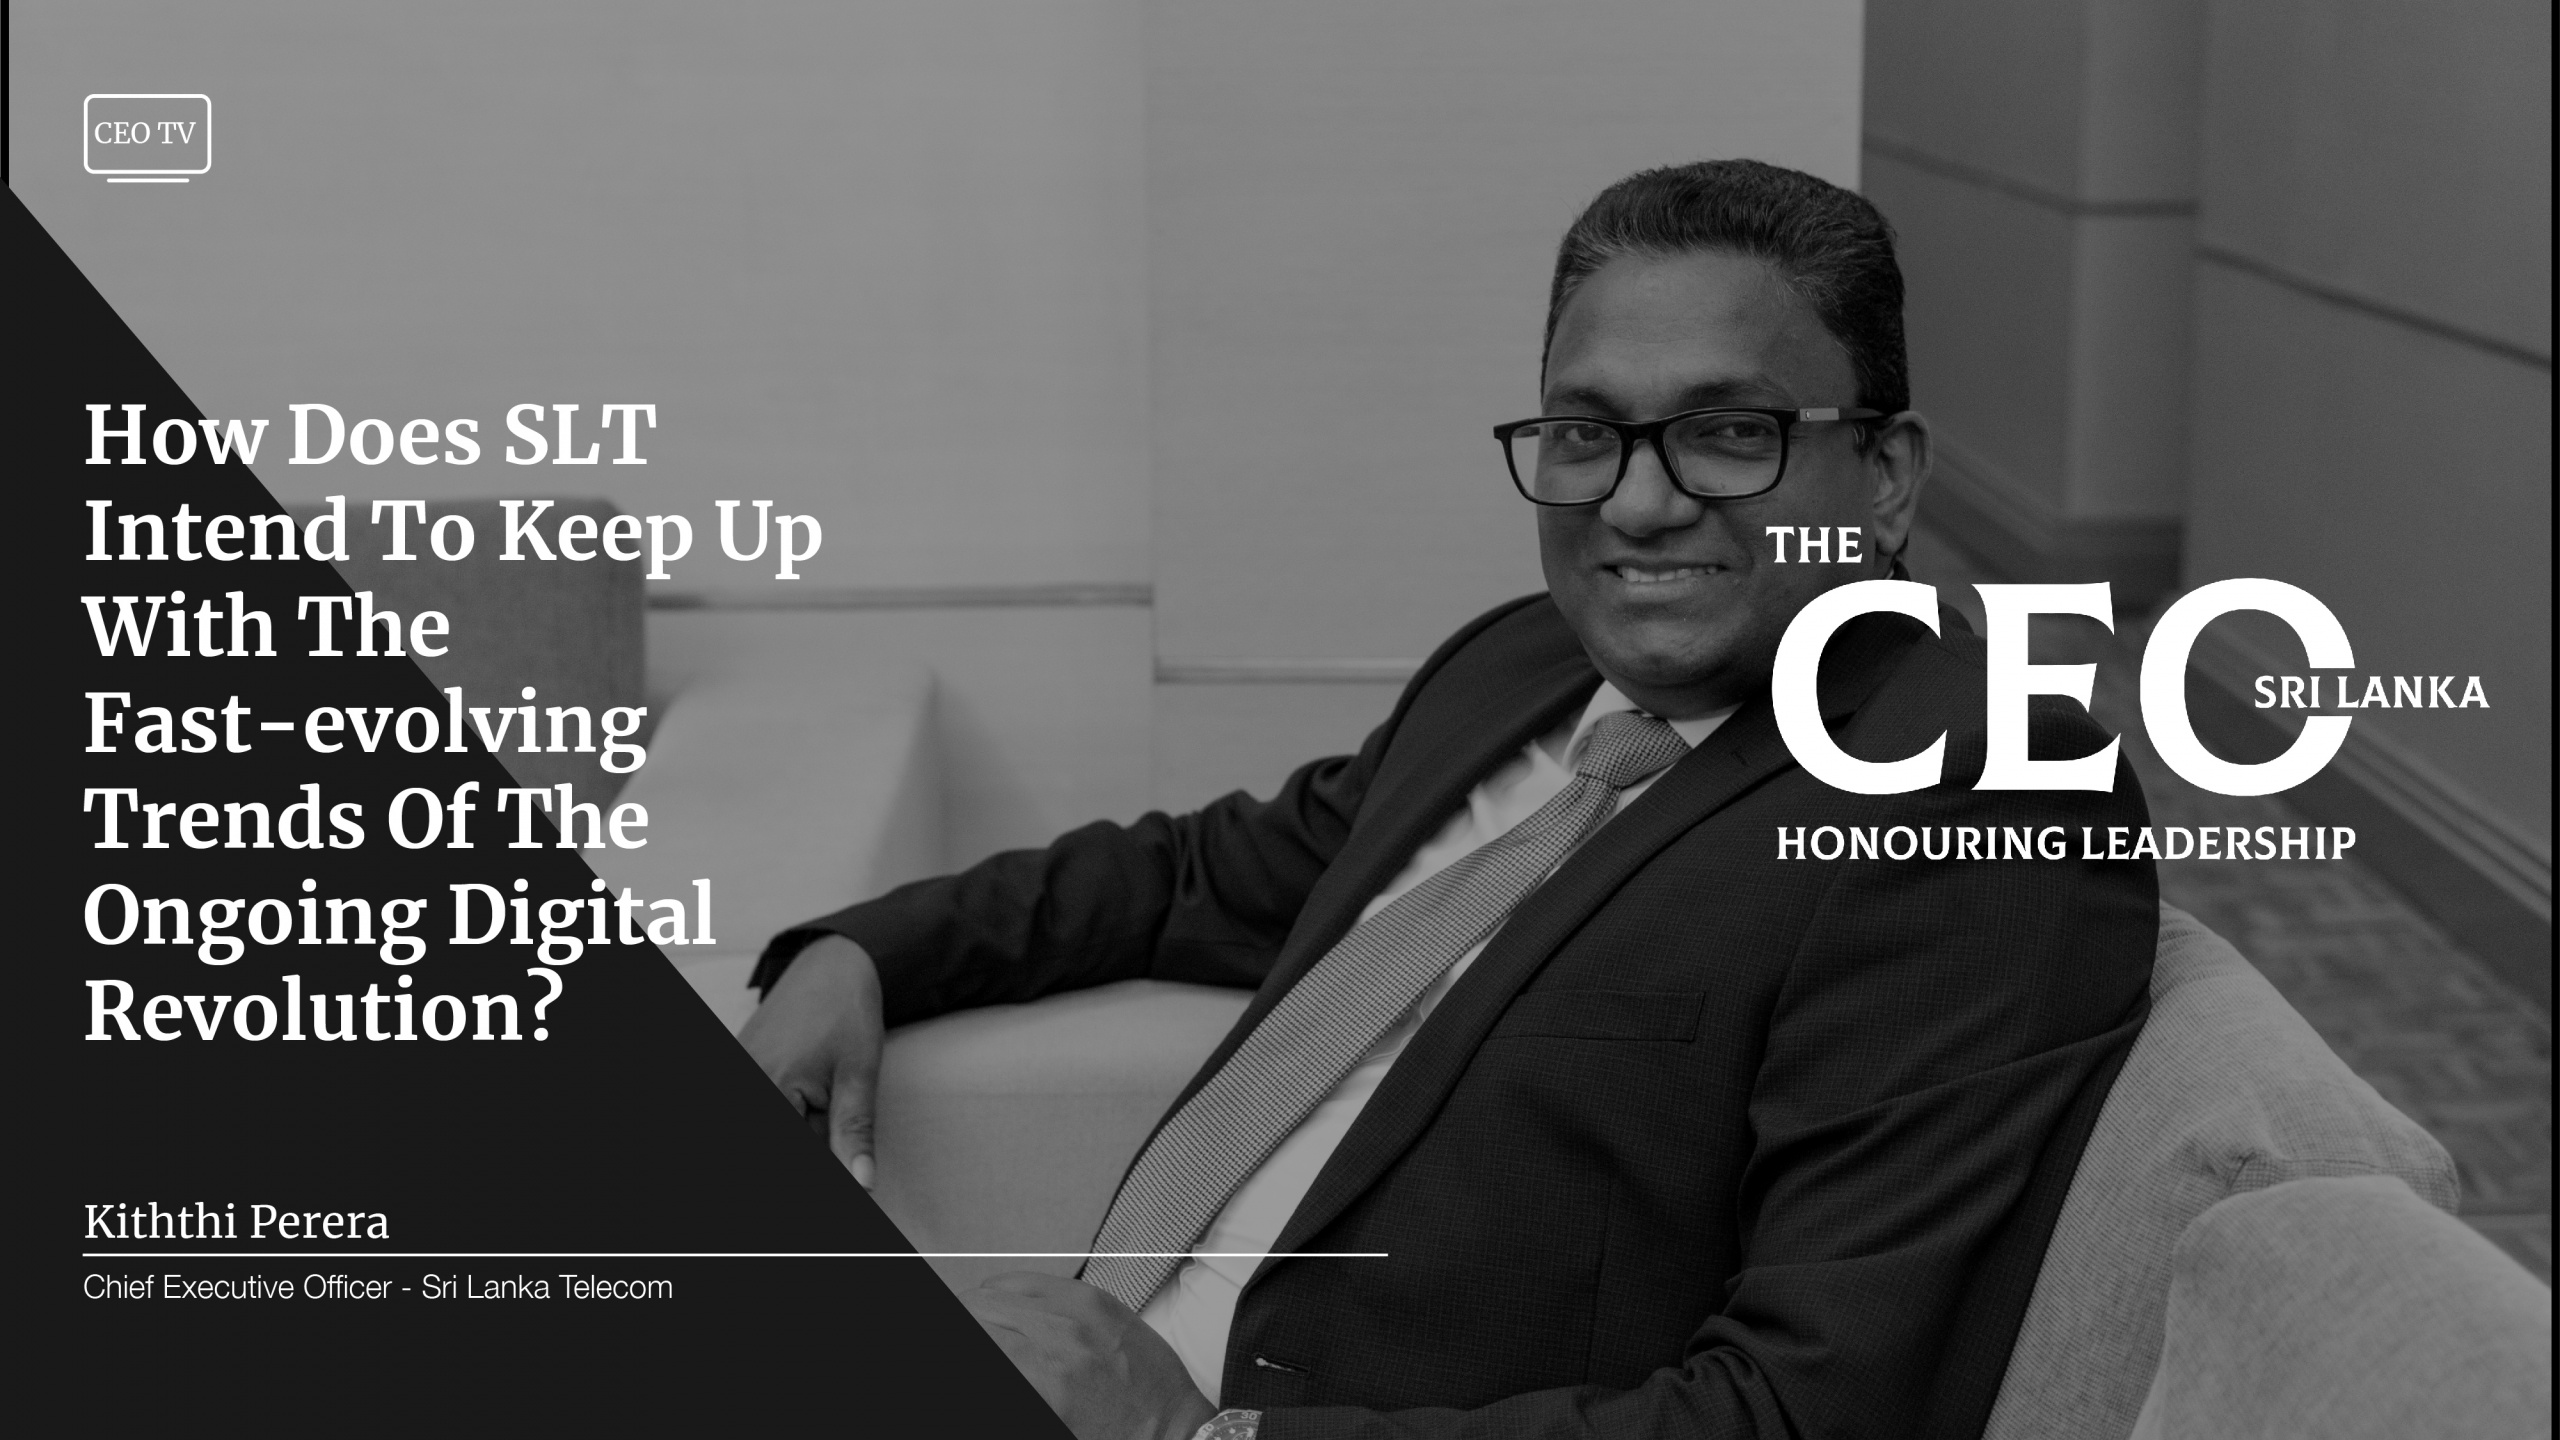 An Interview with Mr. Kiththi Perera, the CEO of Sri Lanka Telecom